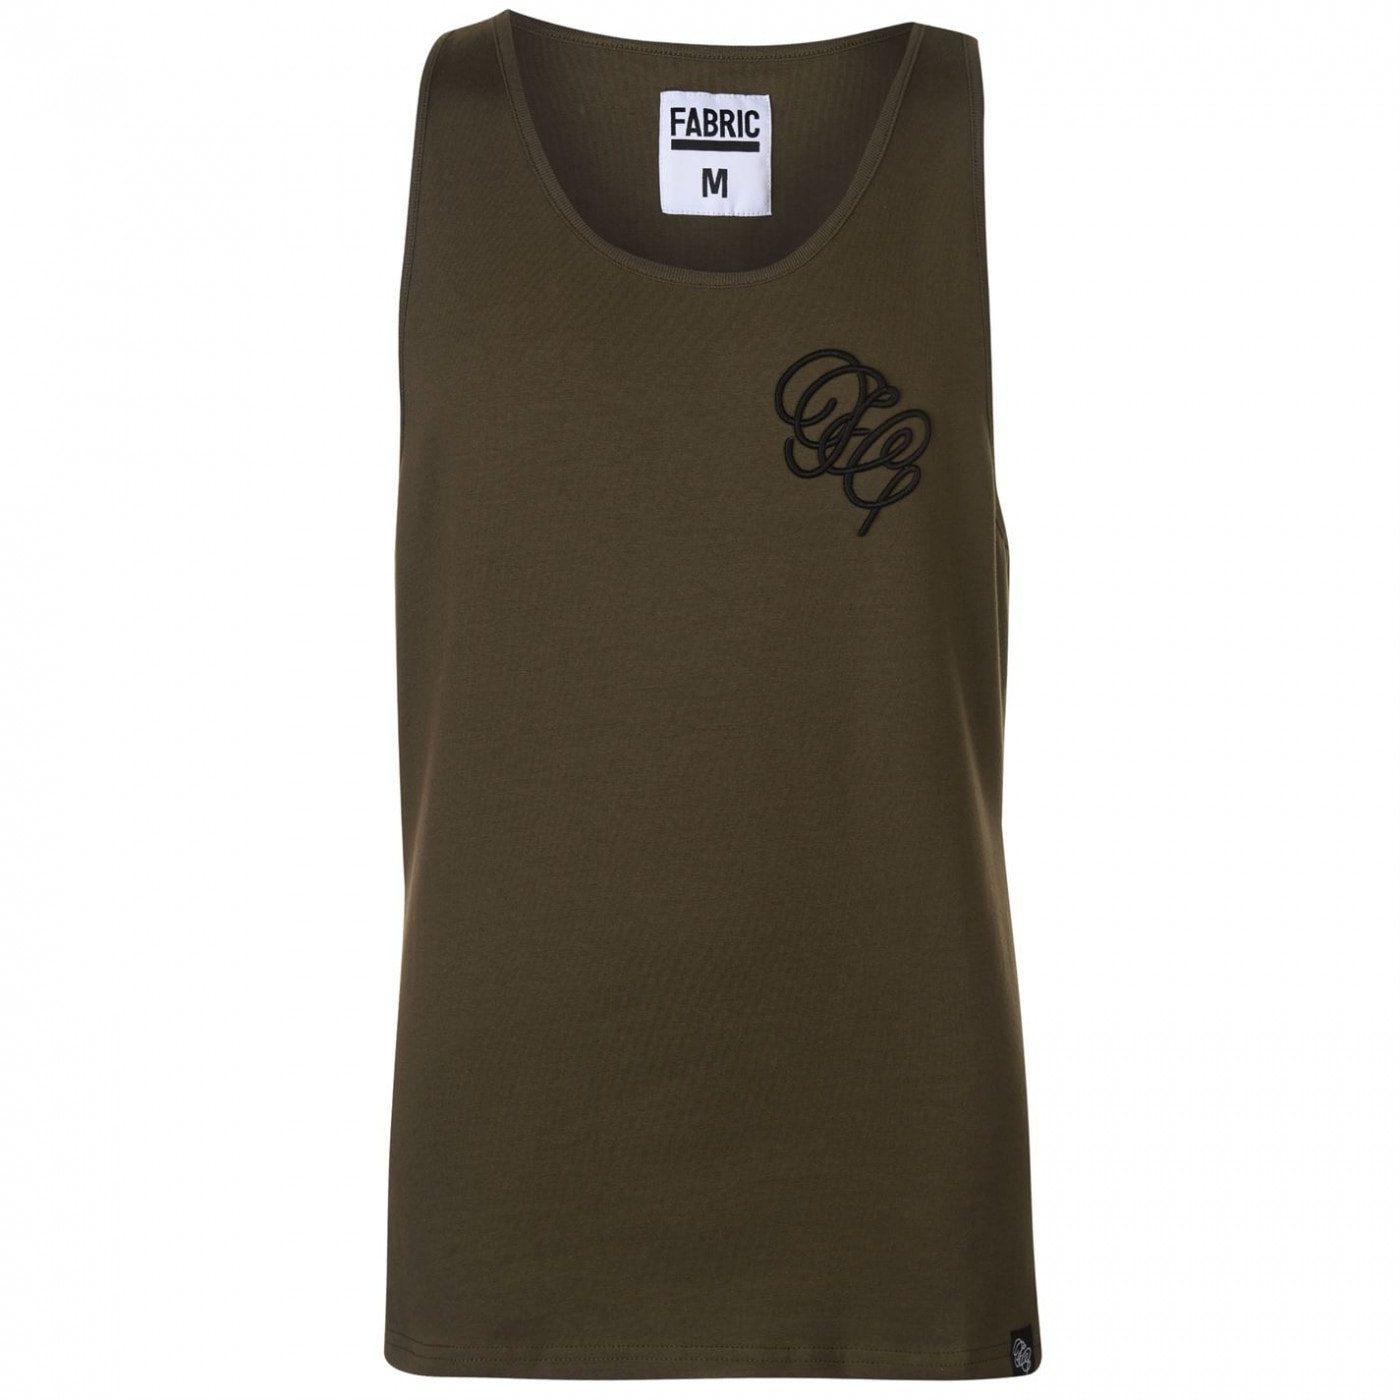 Fabric Embroidered Vest